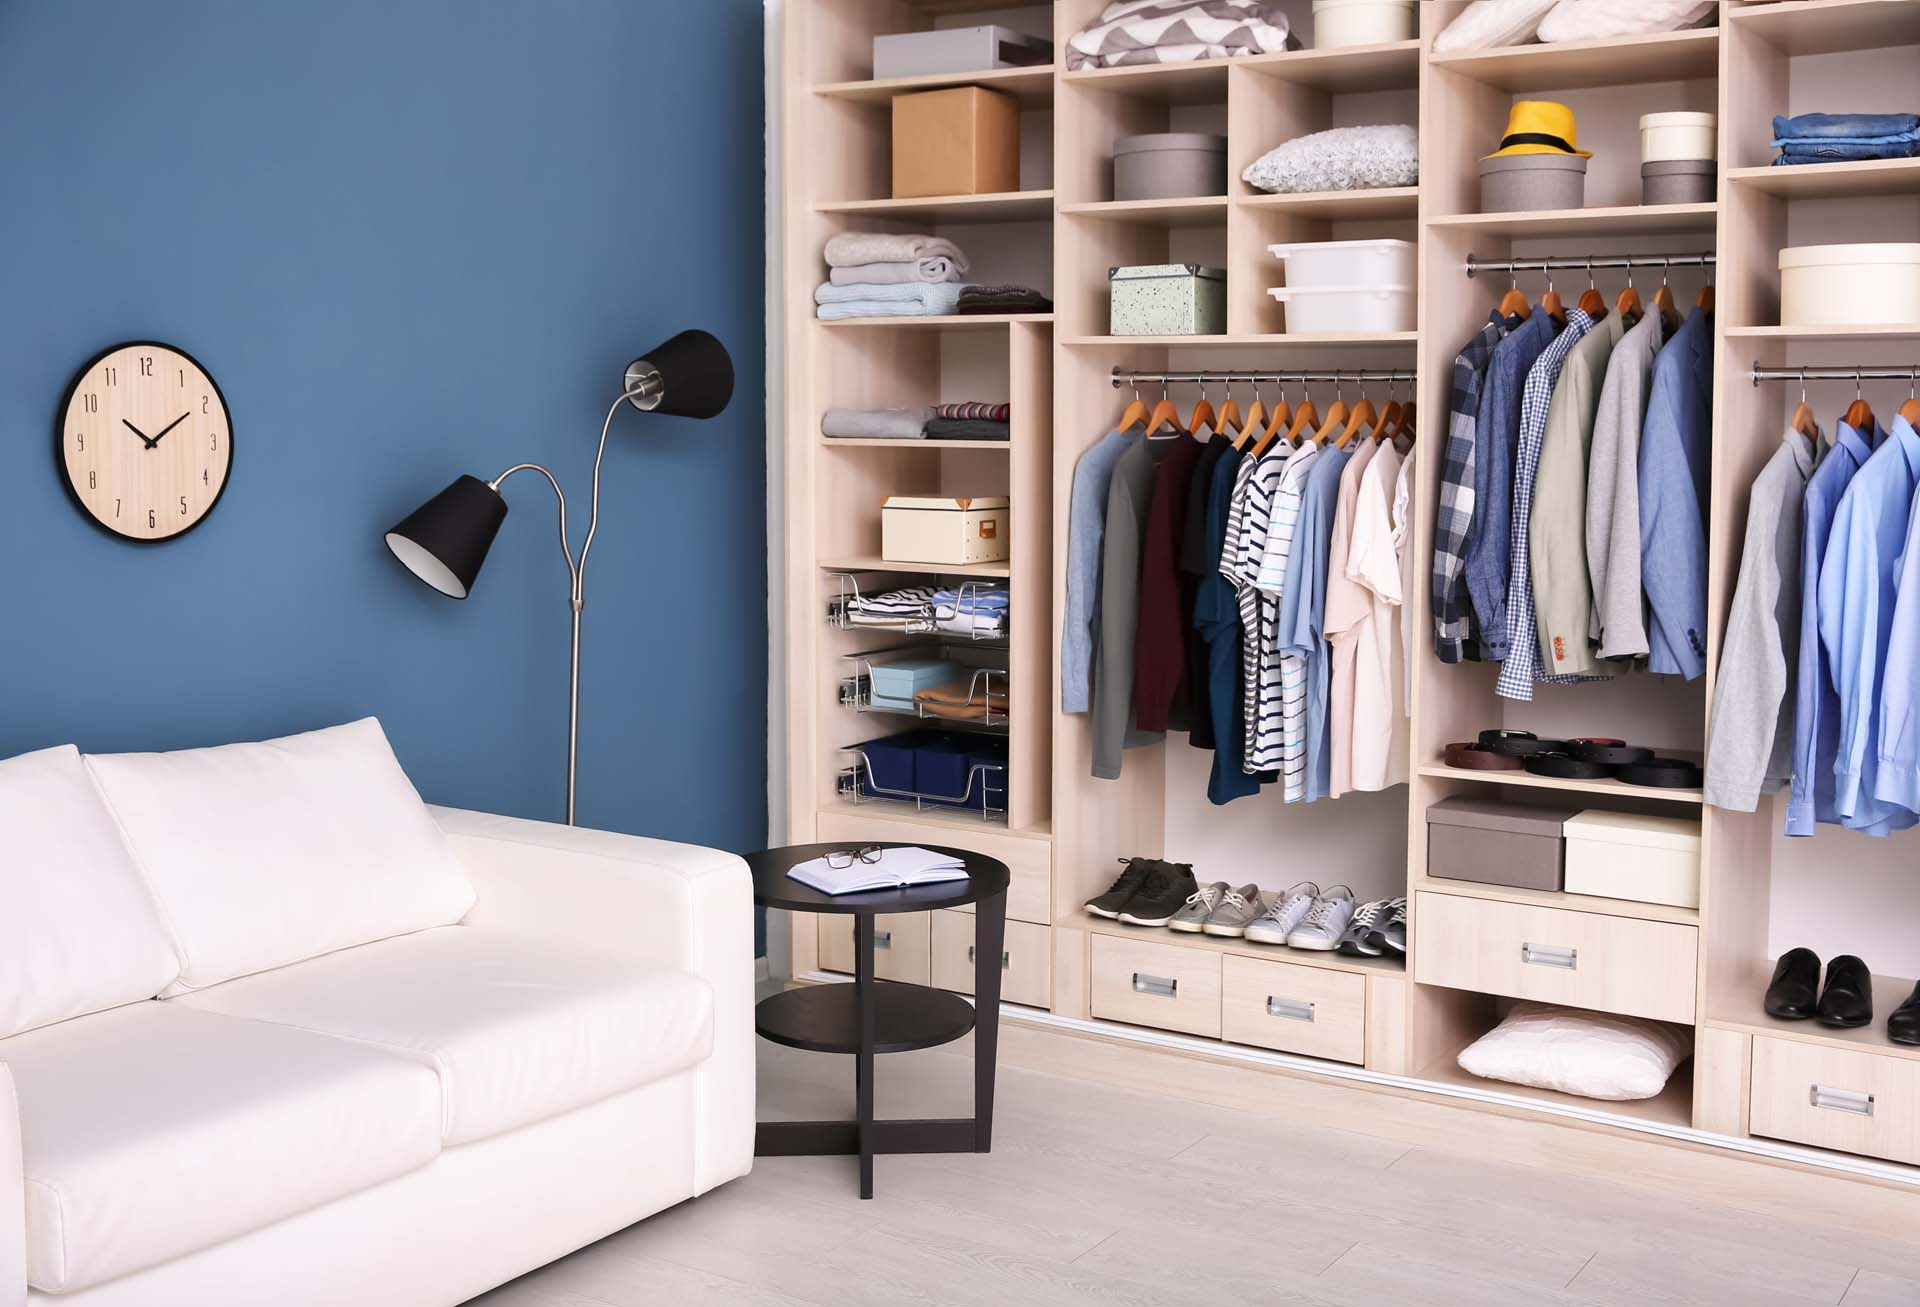 Dressing room interior with big wardrobe; Shutterstock ID 1033476205; PO: 25pack; Job: 20180319K13; Client: tt; Other: aa